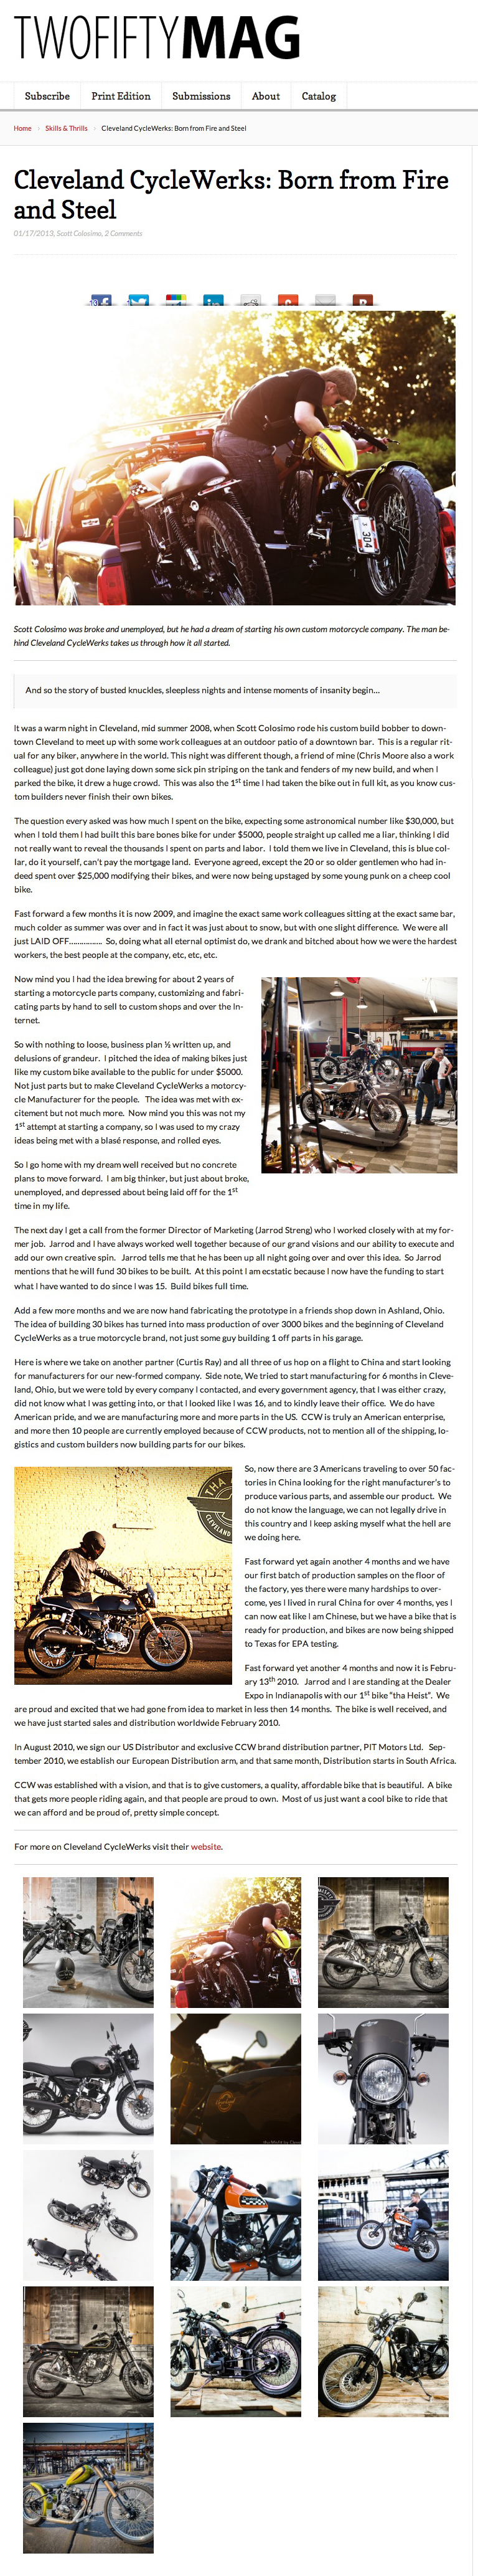 TwoFifty Mag Born From Fire and Steel CCW 2013.JPG